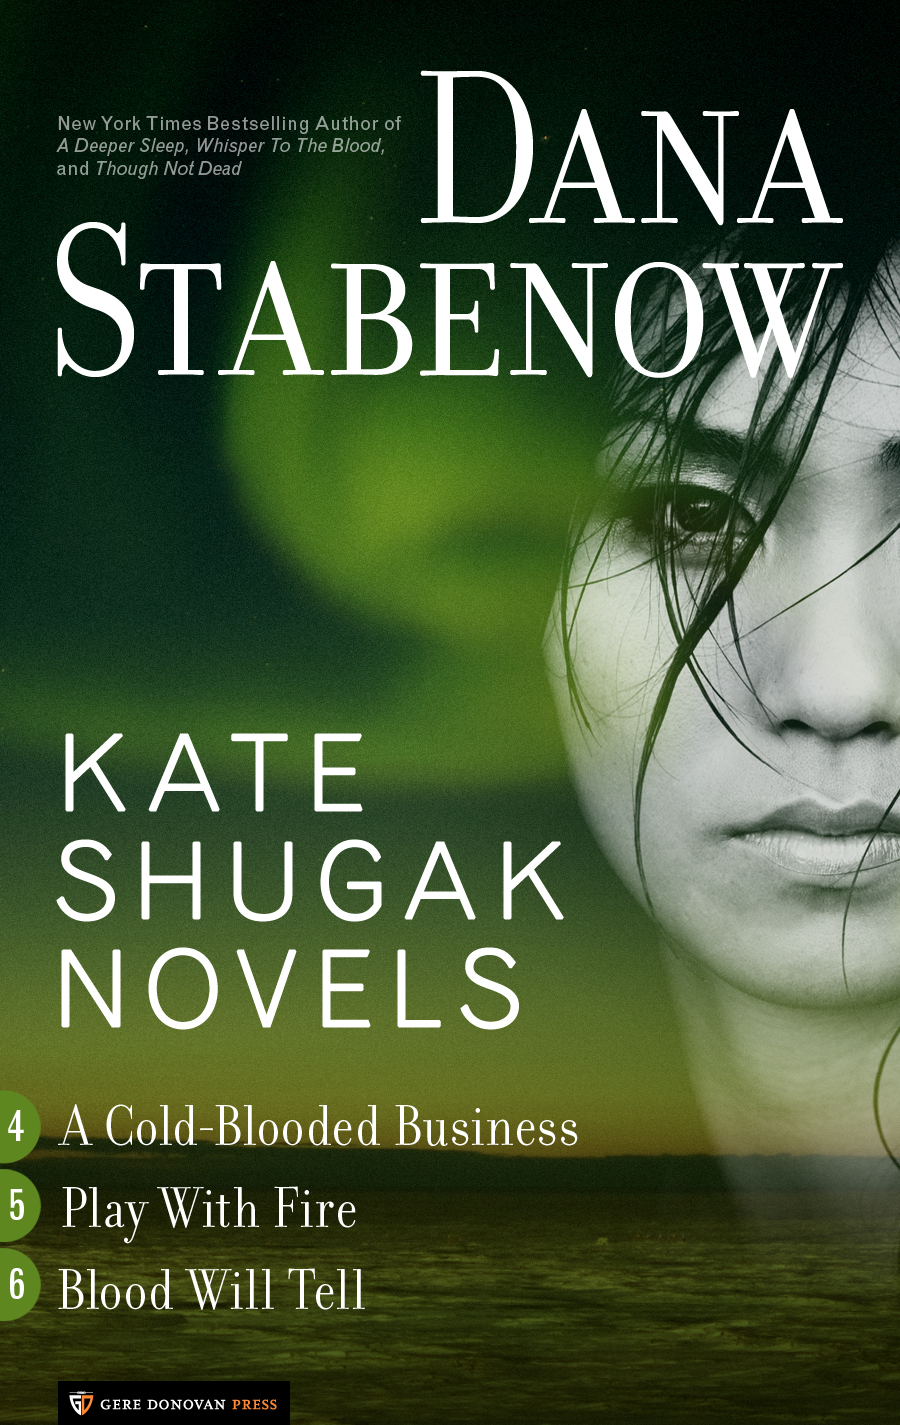 The Kate Shugak Novels, Vol. 2